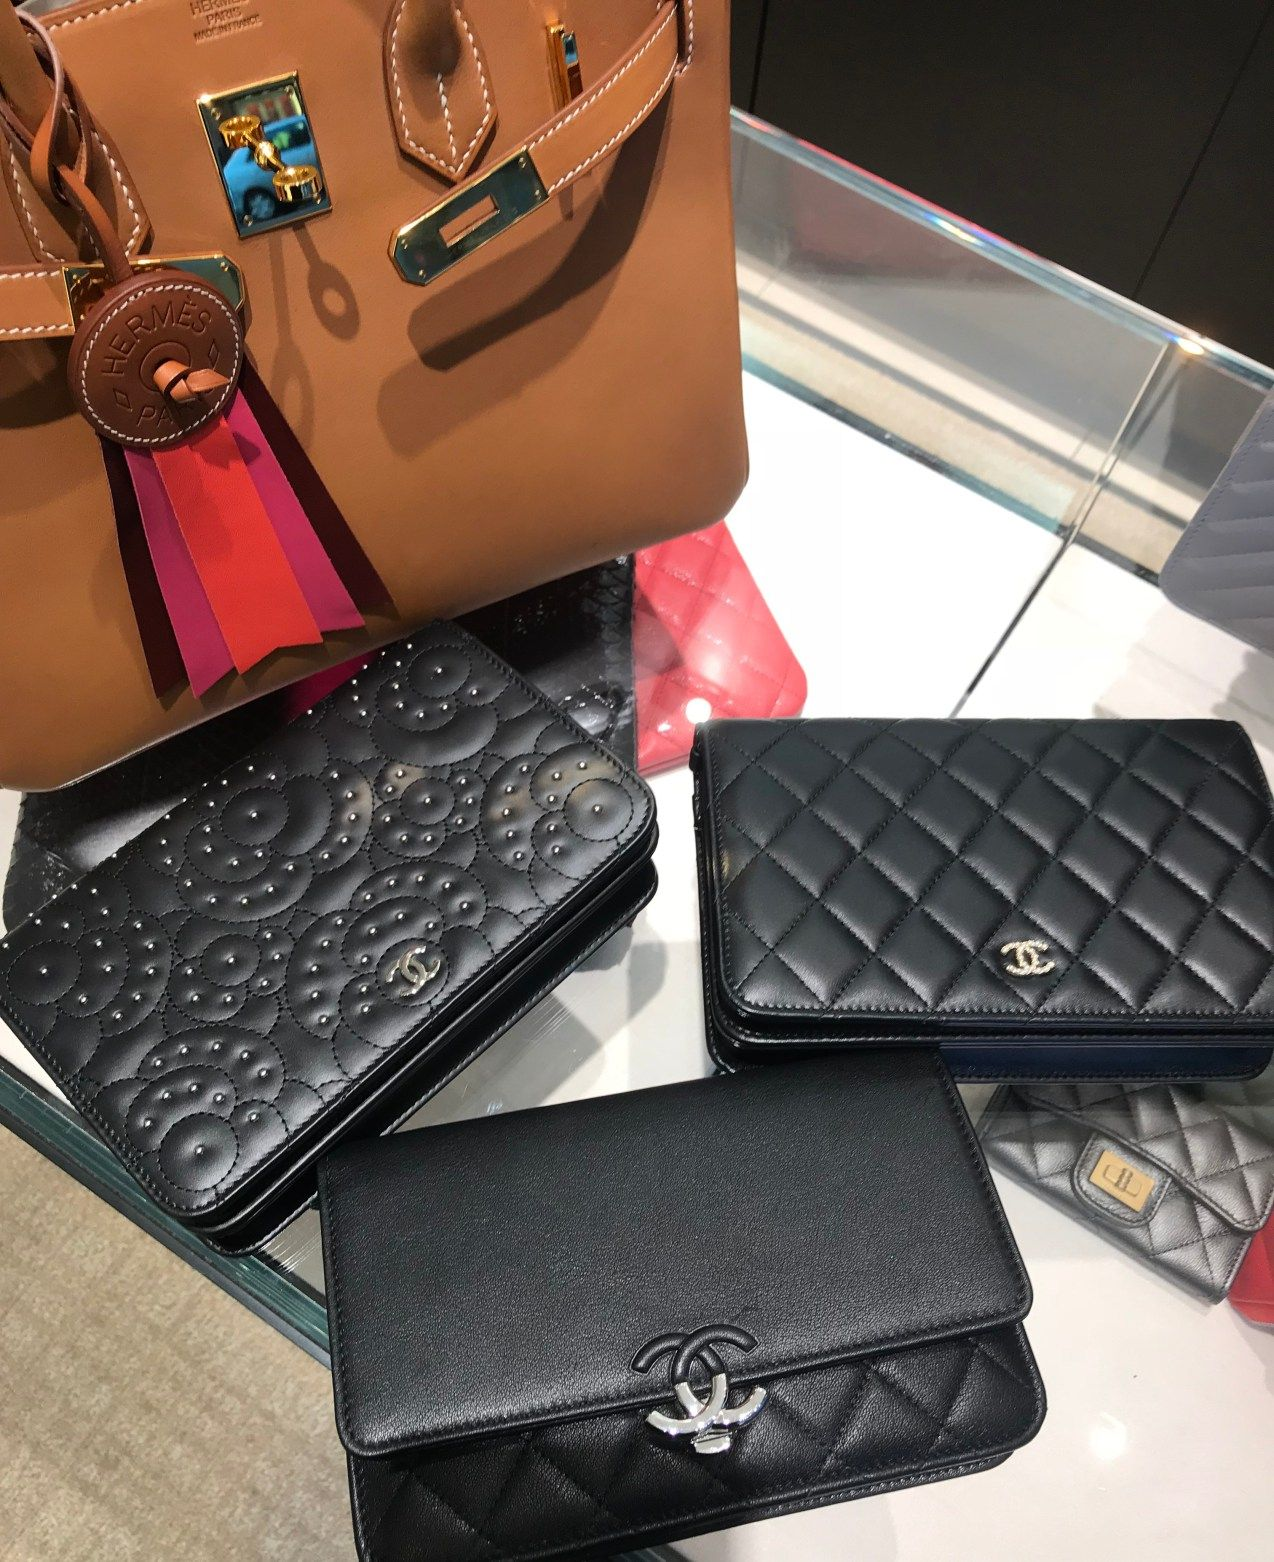 007b6e15173 PurseBop closely investigates the Chanel WOC and SLG price increase for  2018. This just weeks after the classic flap increase in Nov and pricing  confusion.